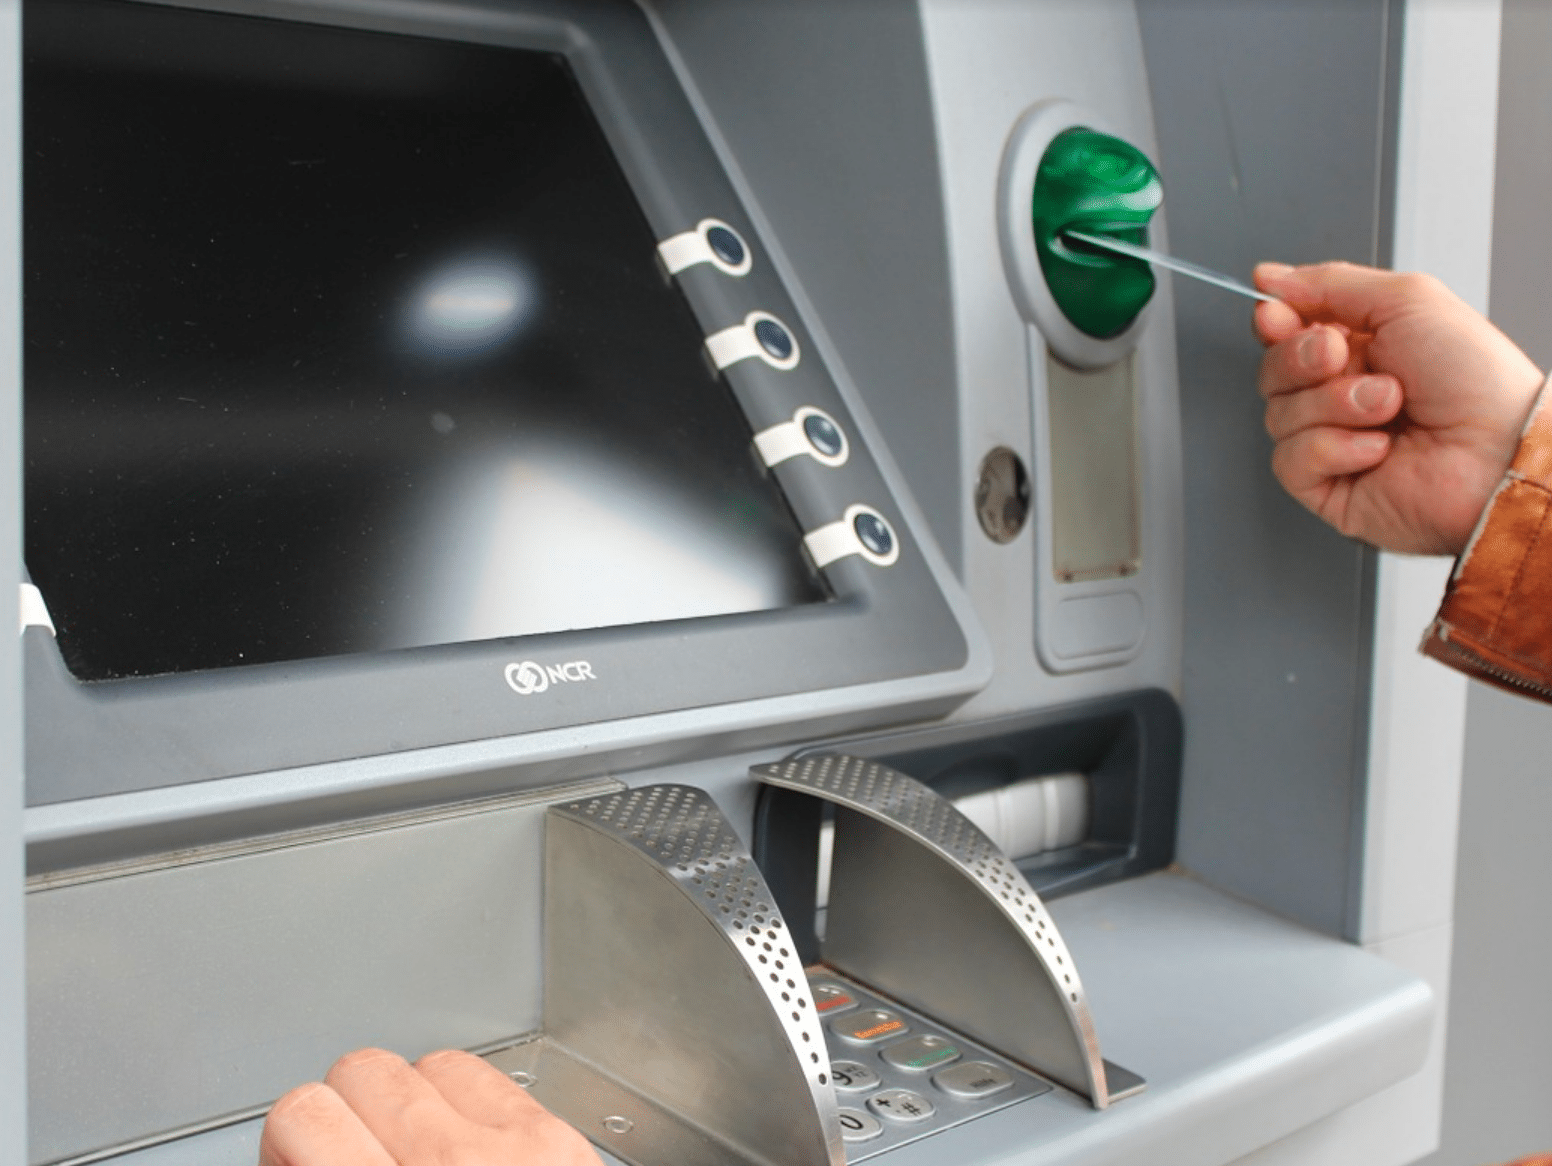 ATM Machines for sale